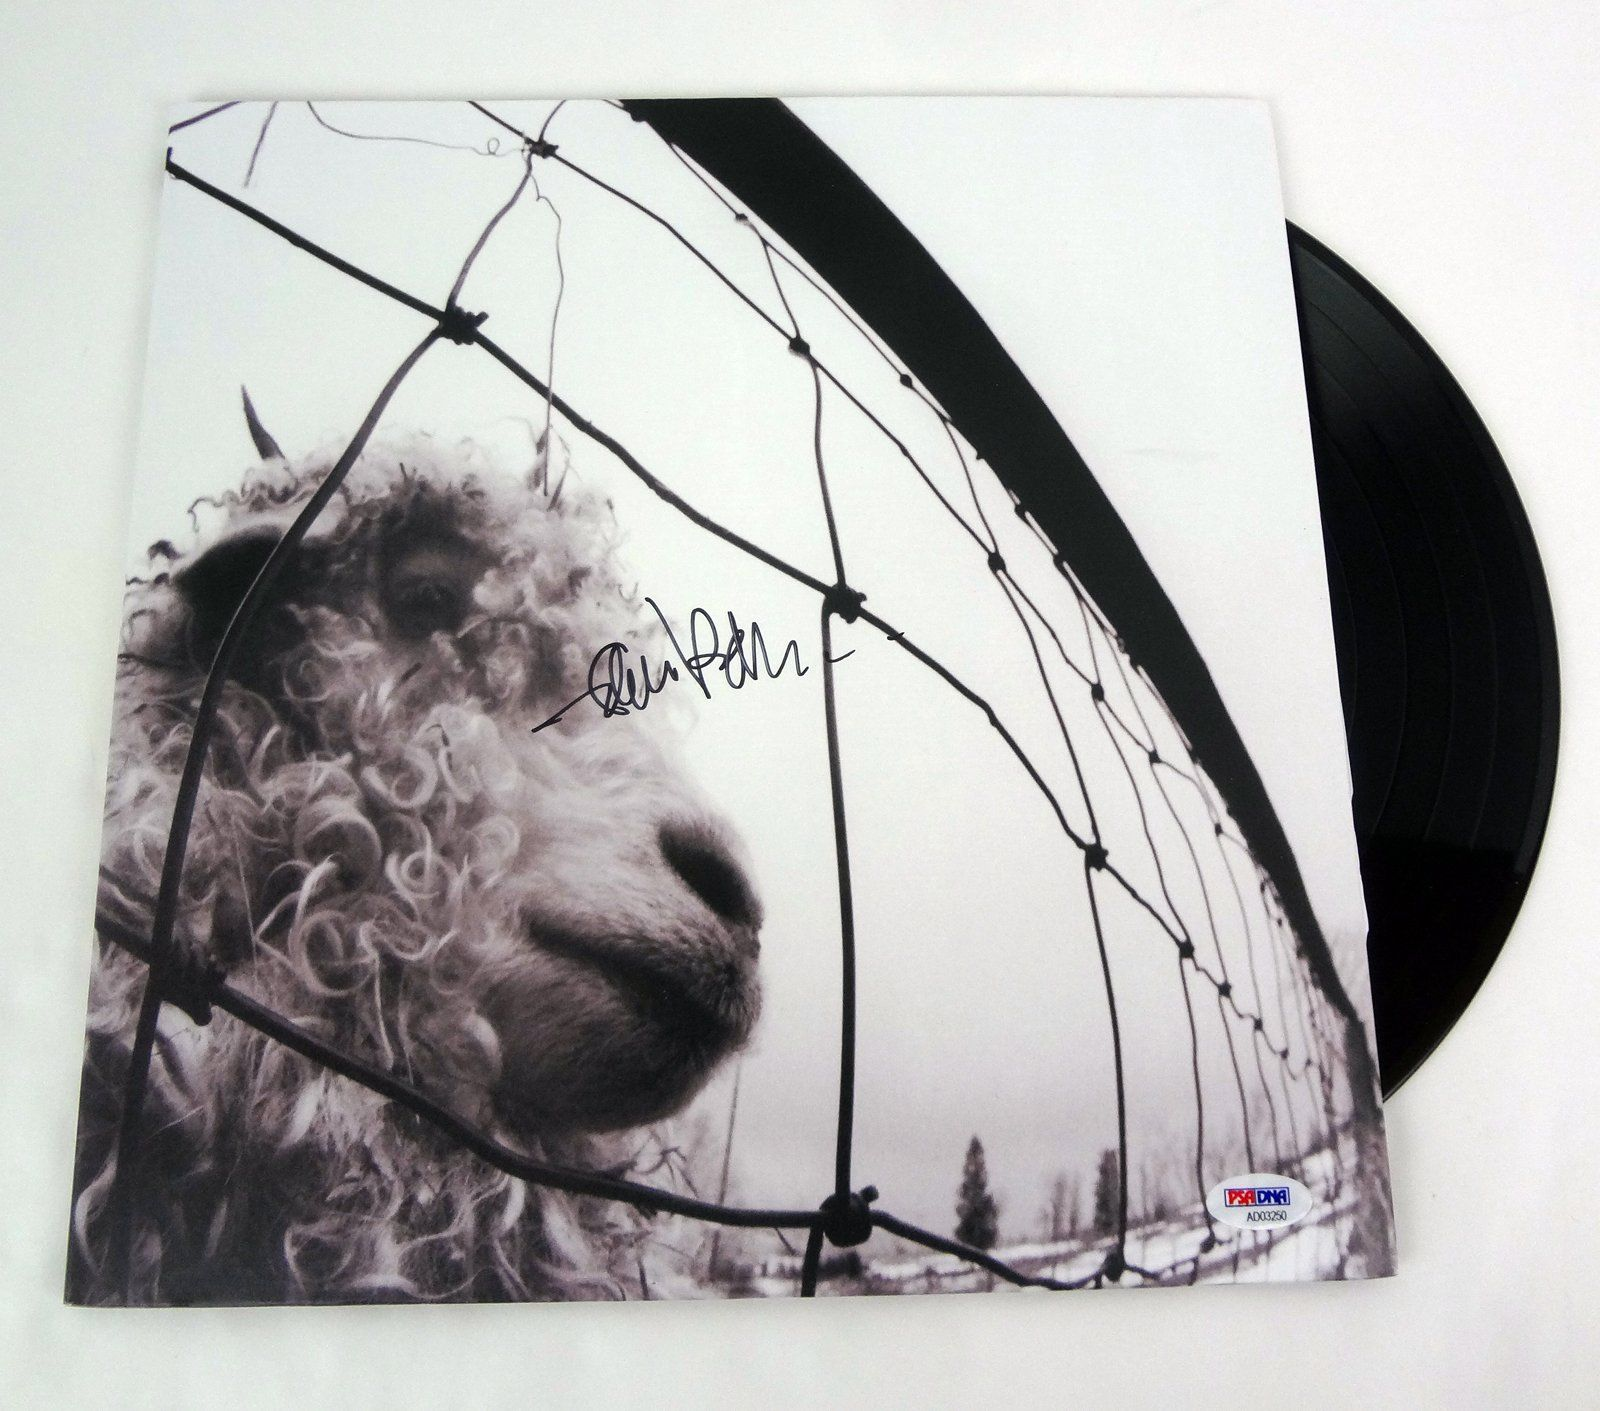 Eddie Vedder Pearl Jam Signed Autograph Vs Vinyl Record Album Psa Dna Coa Find Out More About The Great Product At Th With Images Vinyl Record Album Vinyl Records Vinyl